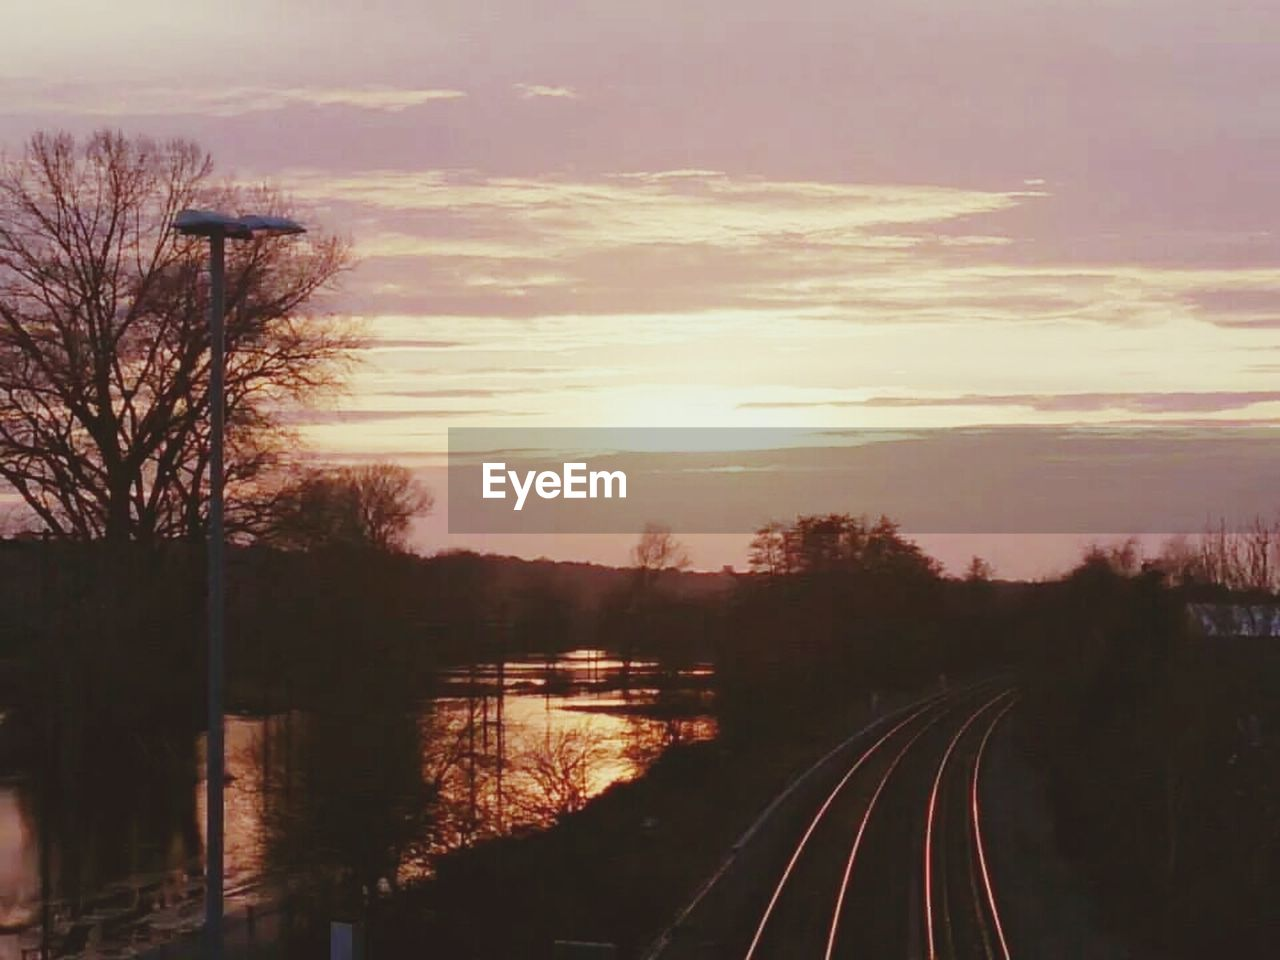 sunset, transportation, tree, sky, railroad track, no people, scenics, outdoors, nature, water, beauty in nature, bare tree, city, day